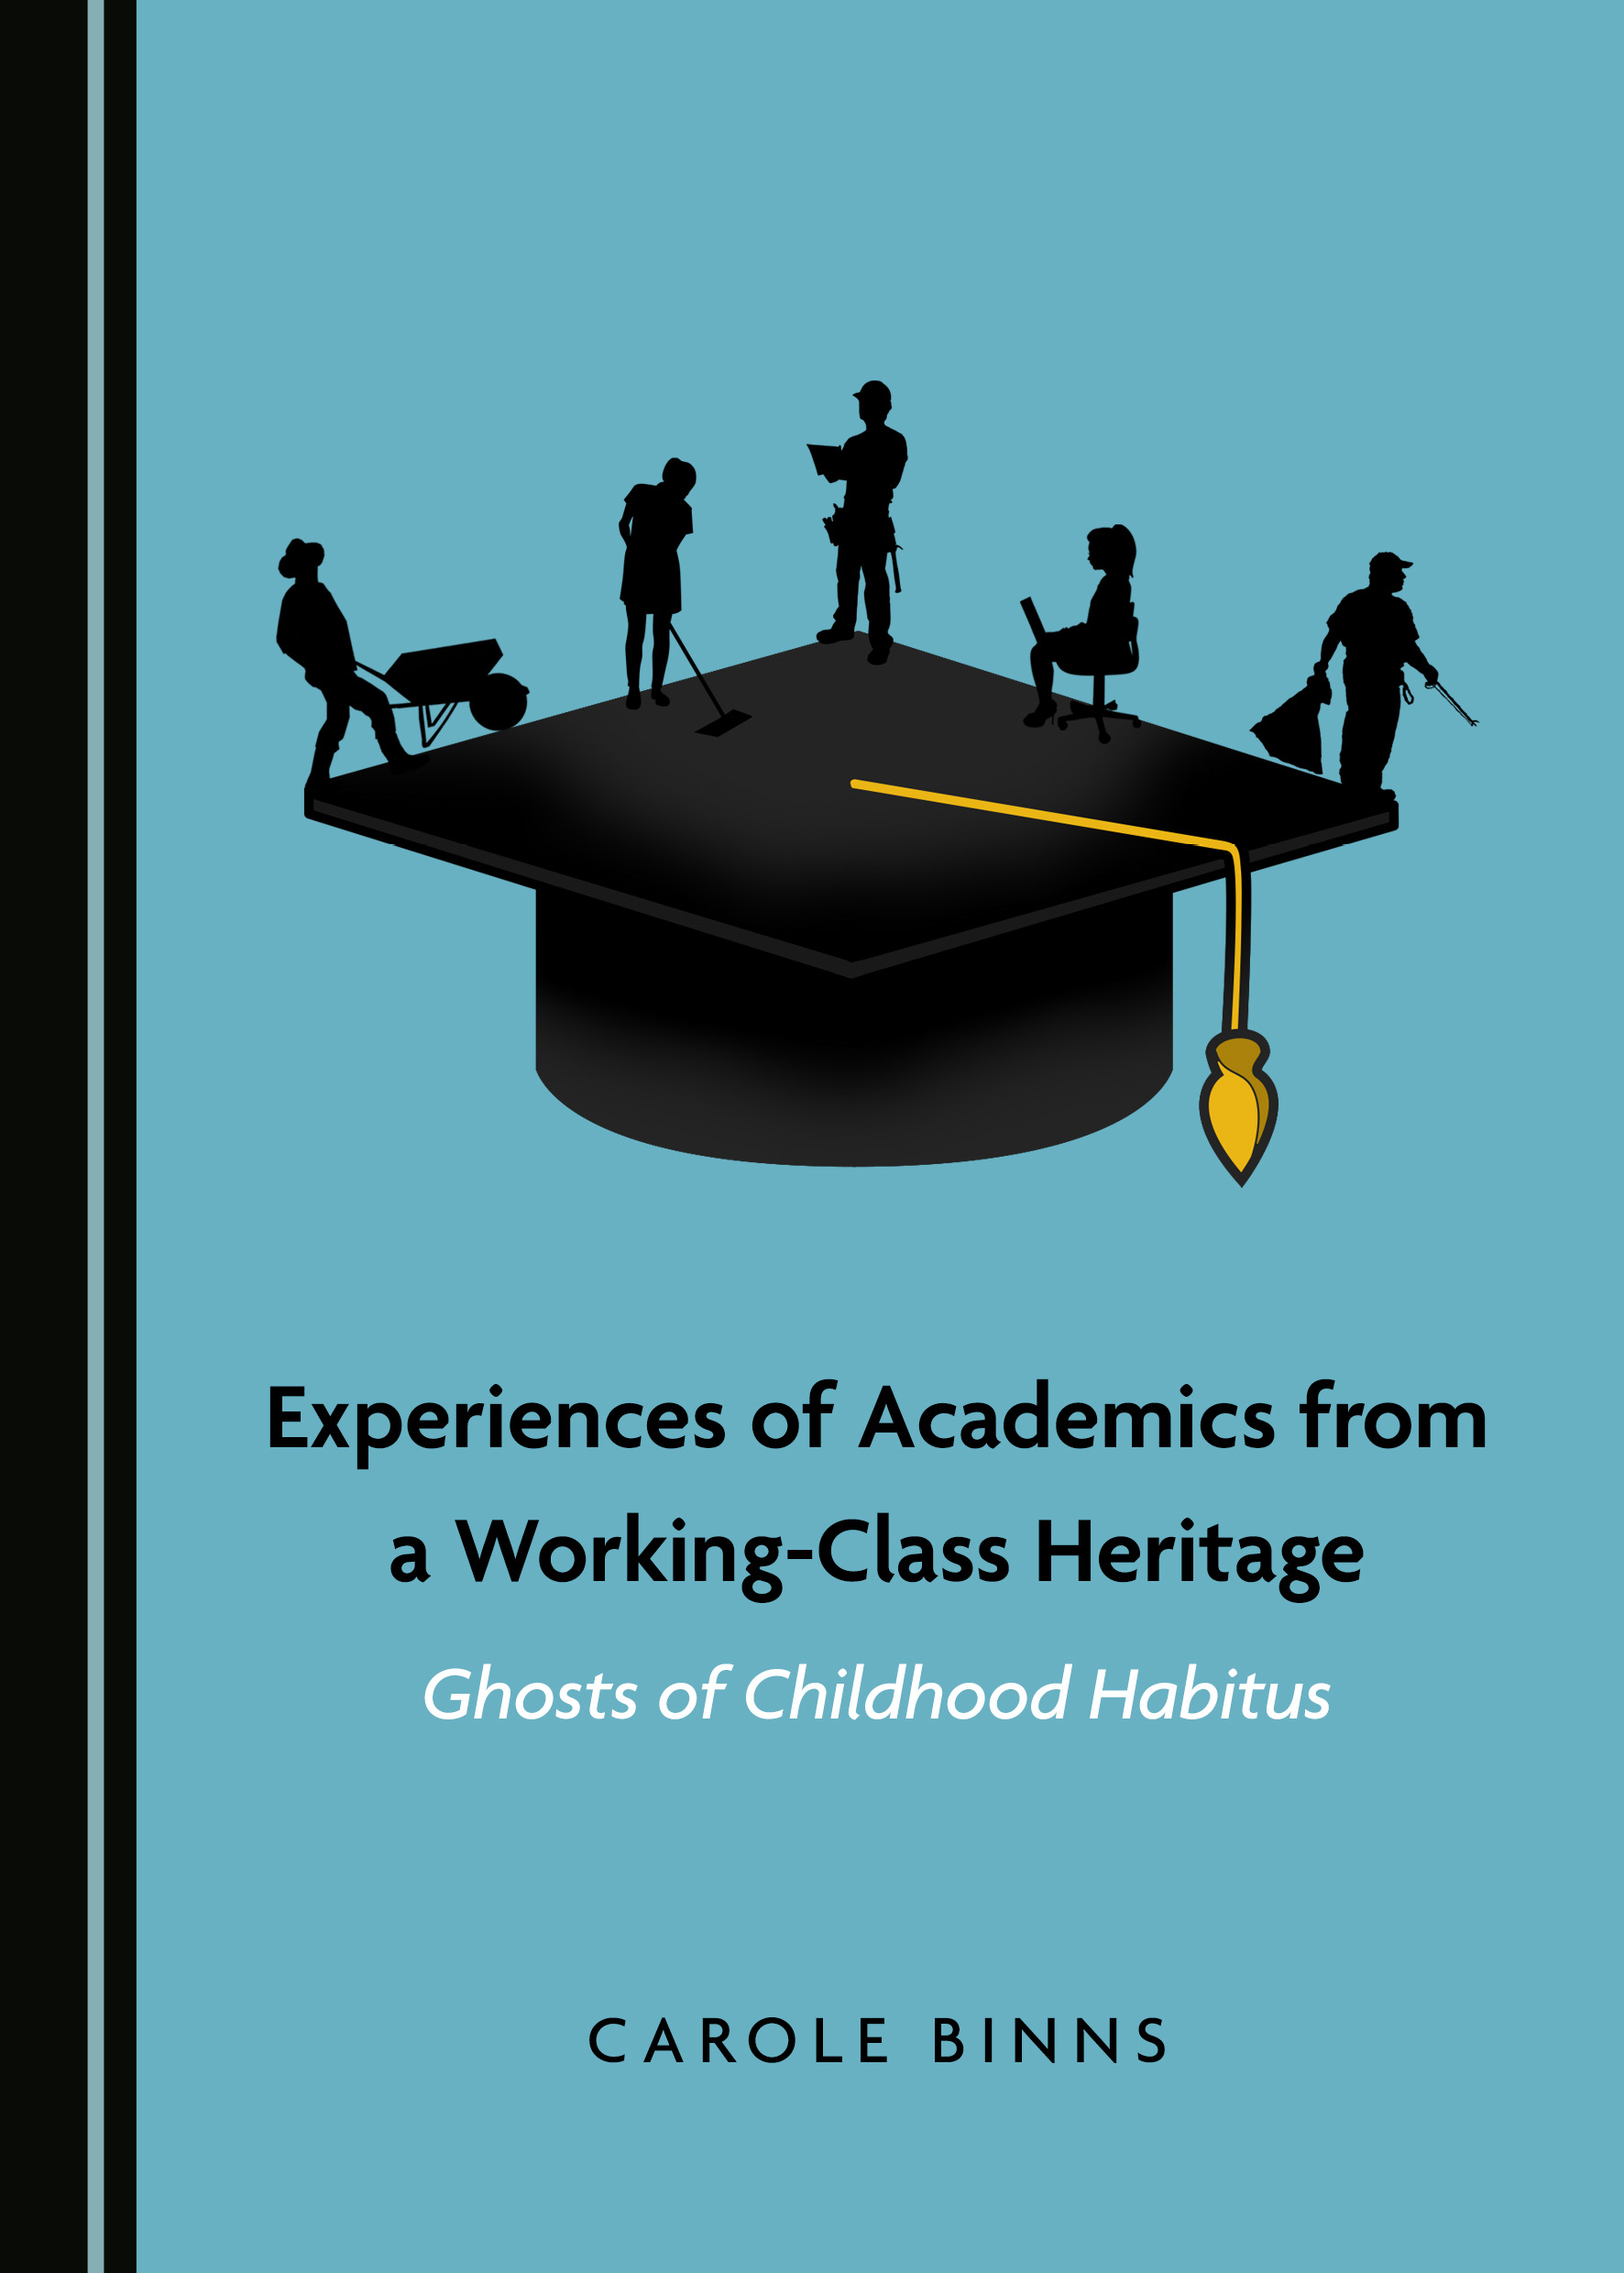 Experiences of Academics from a Working-Class Heritage: Ghosts of Childhood Habitus